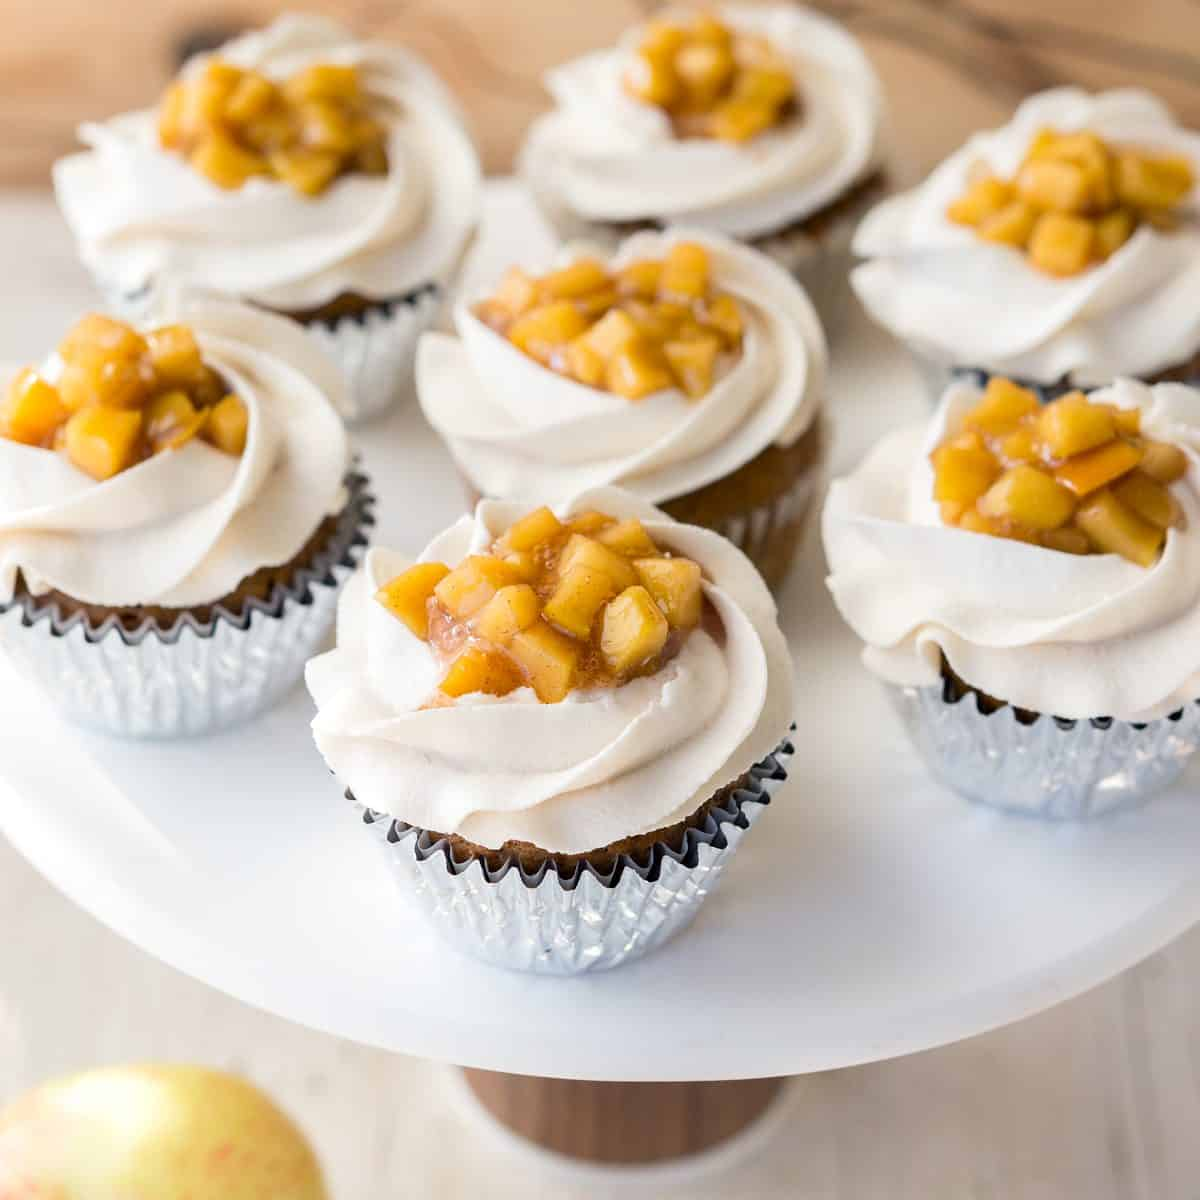 Image of cupcakes on a cake stand with apple pie filling in the middle of vanilla frosting